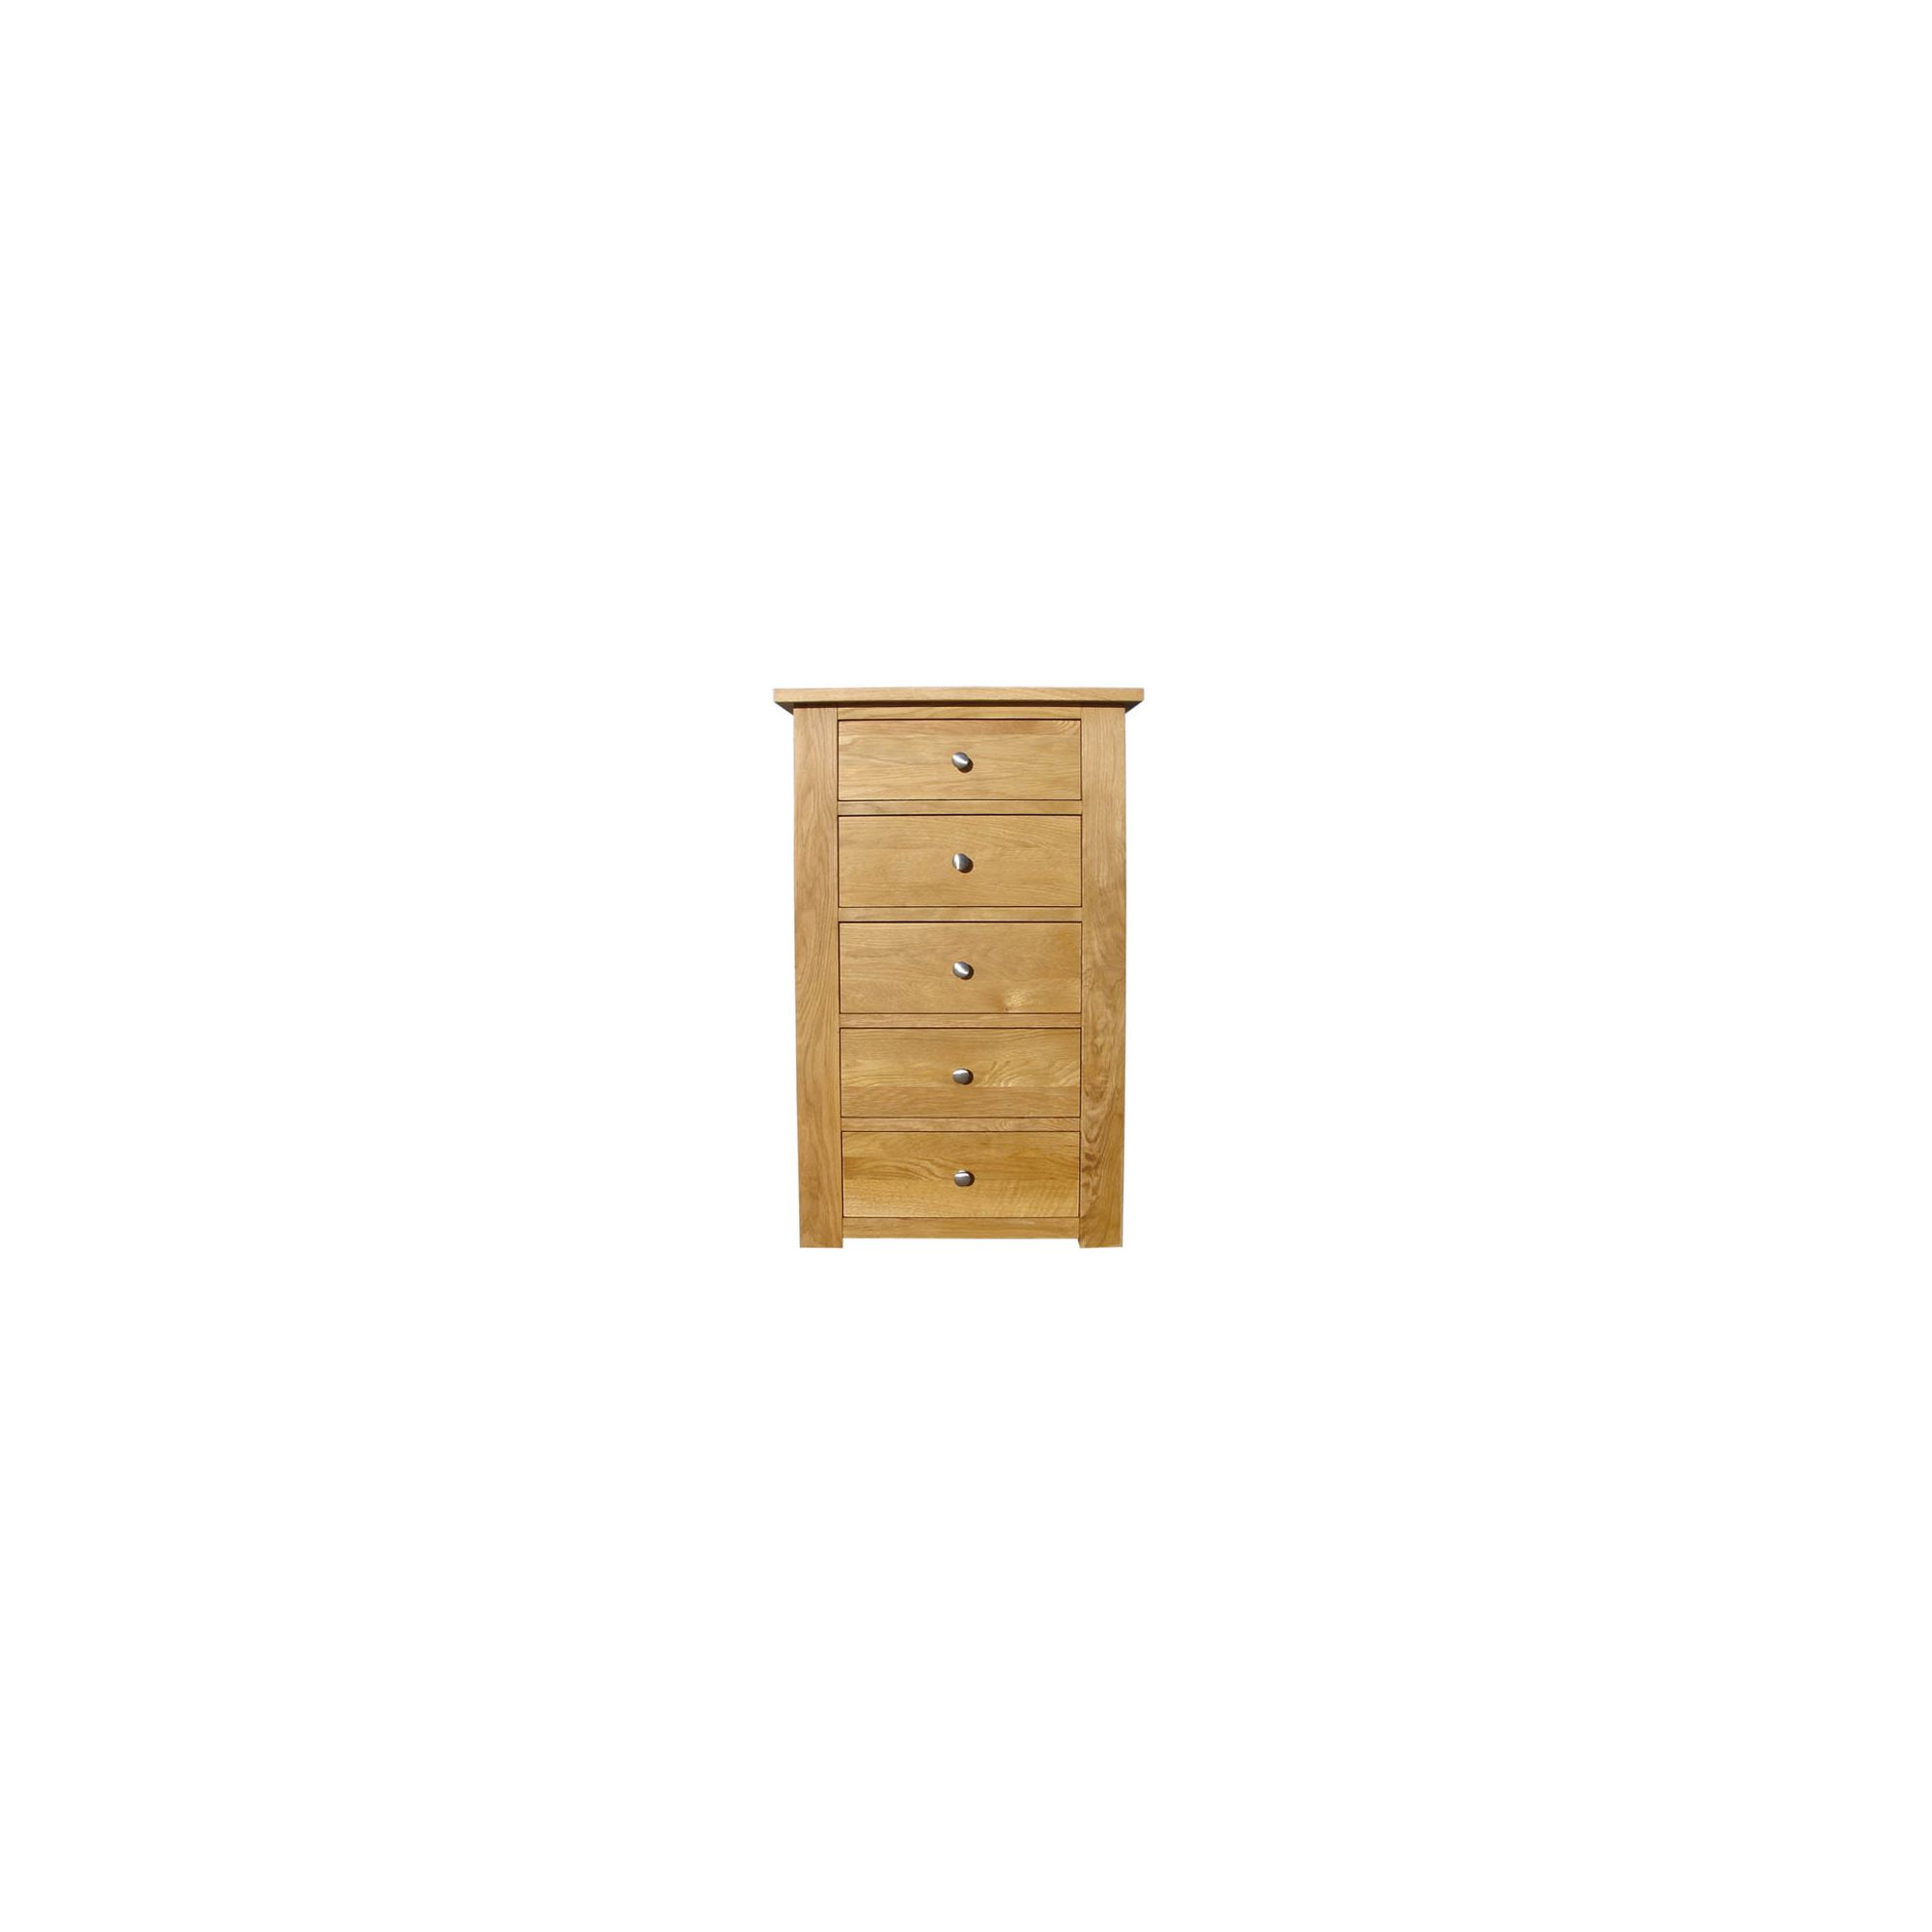 Home Zone Furniture Lincoln Oak 2009 Five Drawers Wellington Chest at Tesco Direct